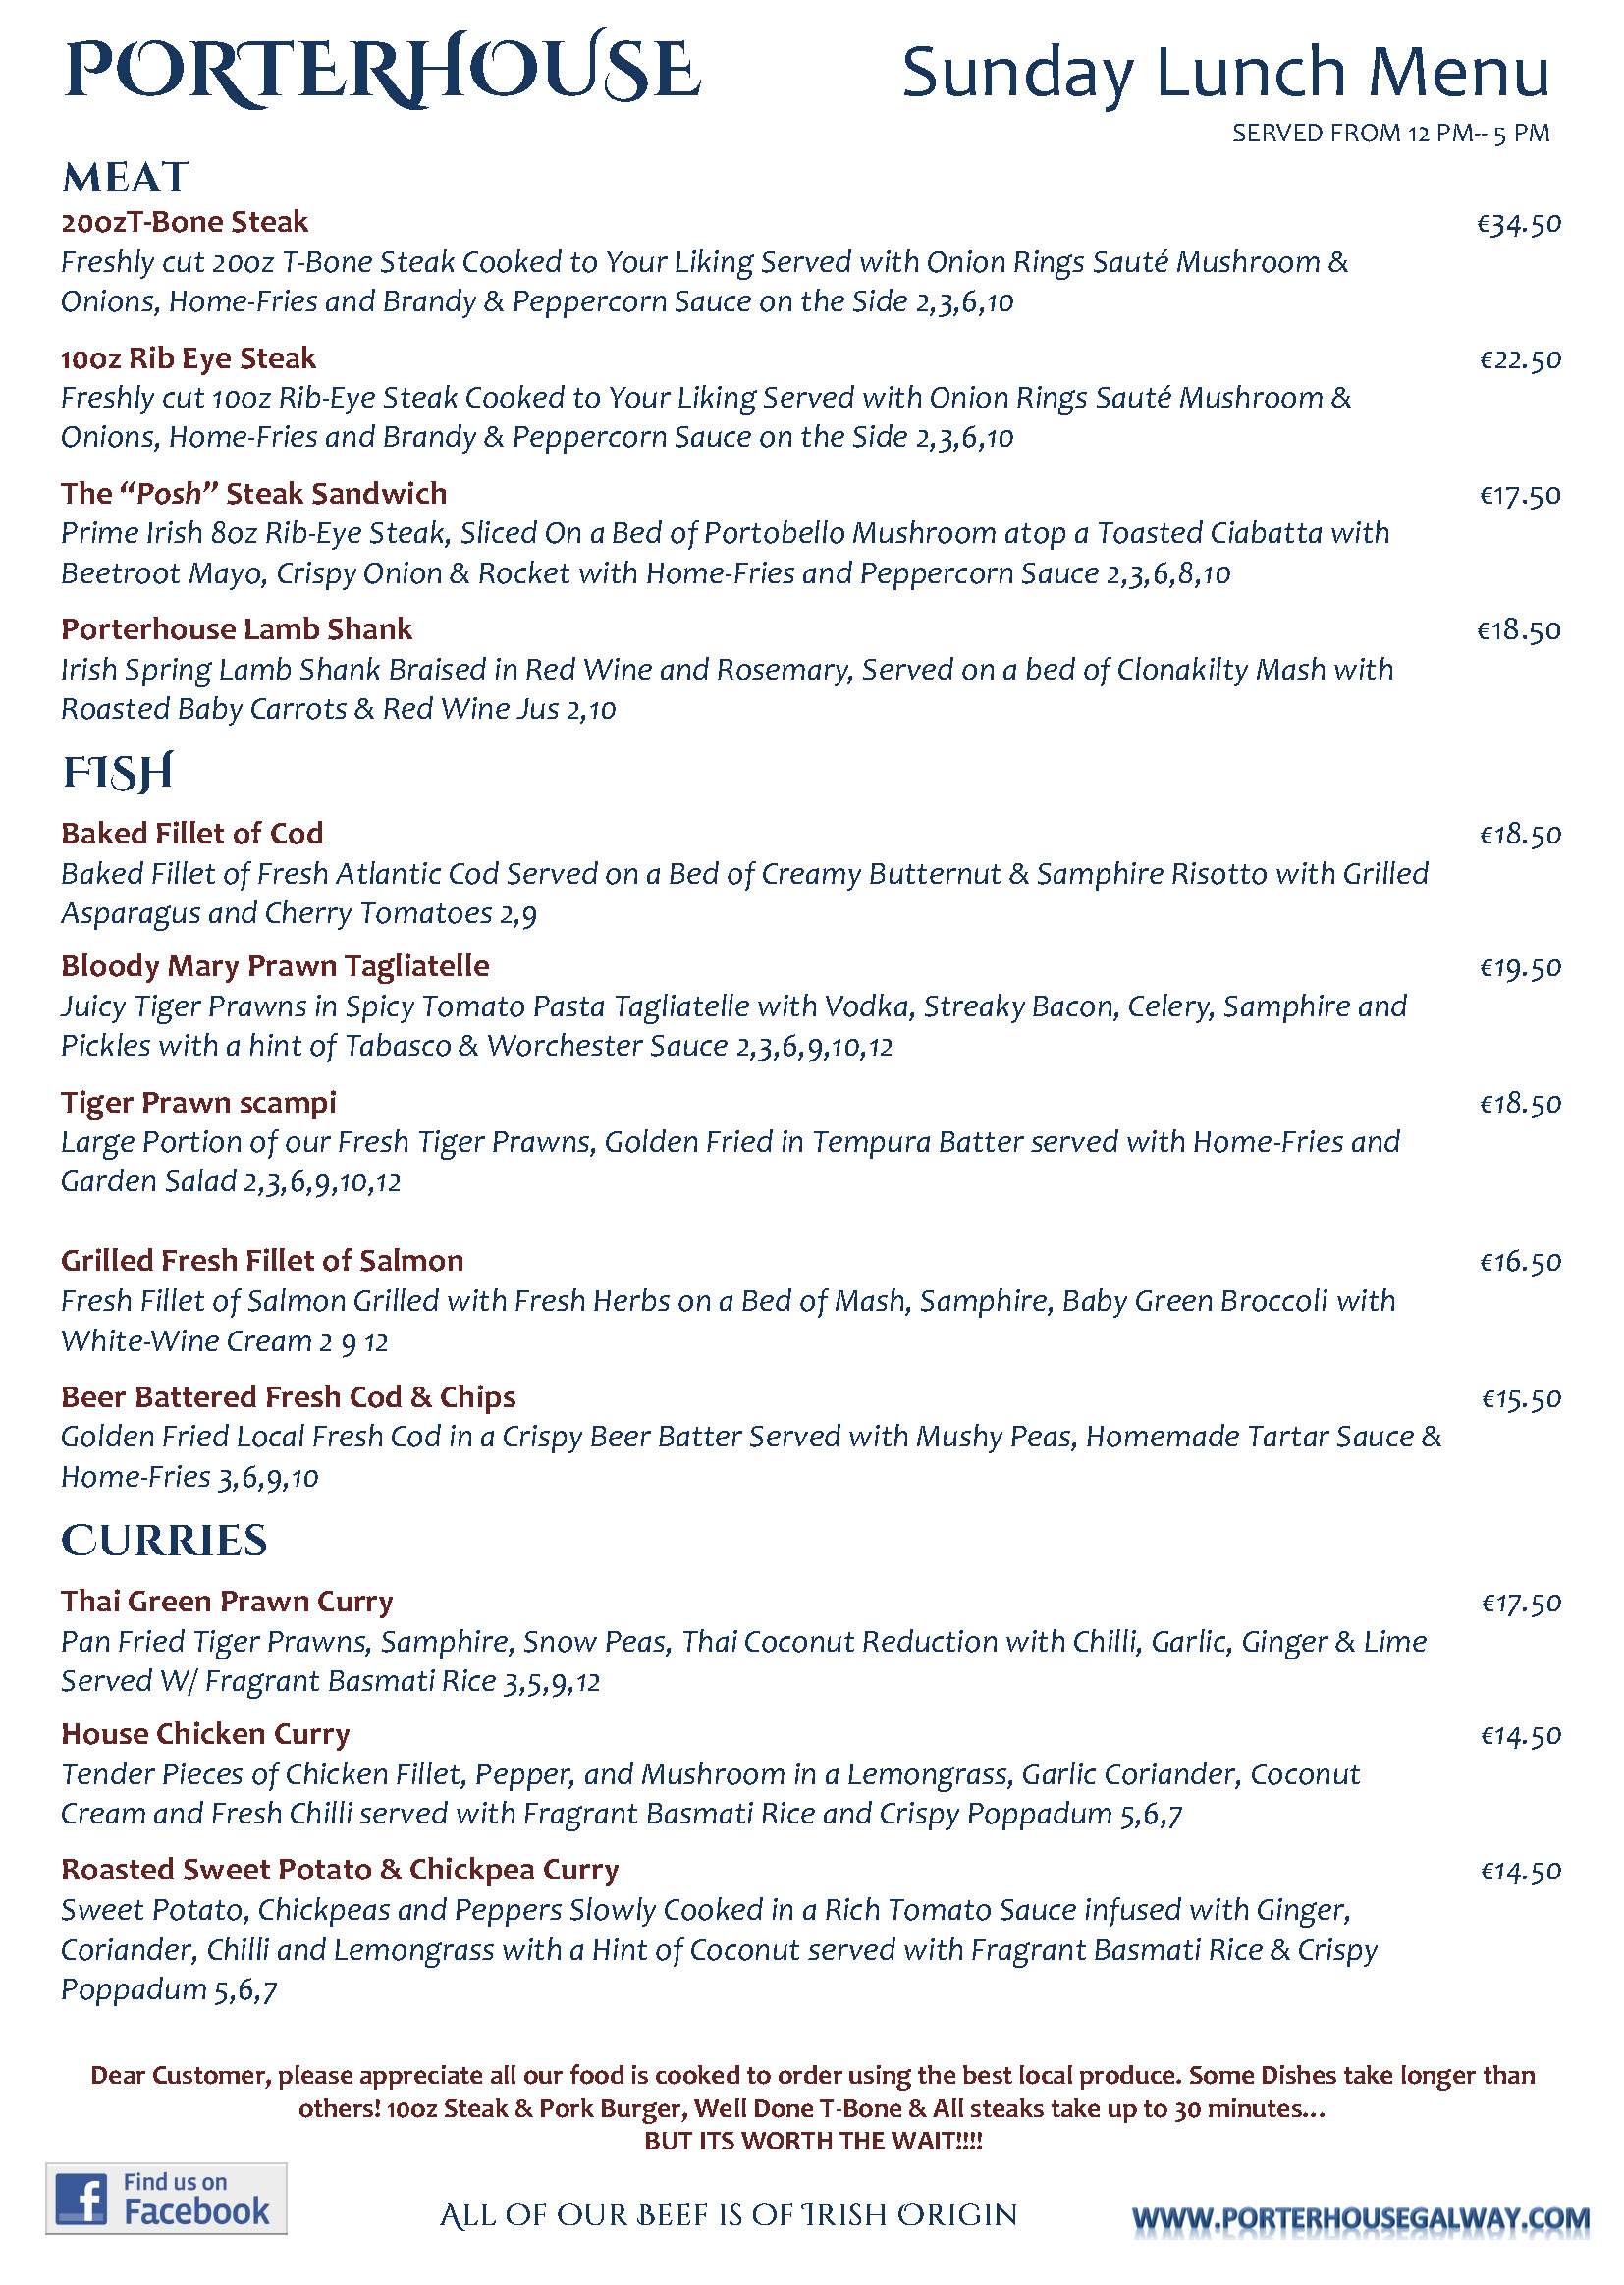 Porterhouse Galway - SundayLunch Menu - Final 19.07.2018_Page_3.jpg